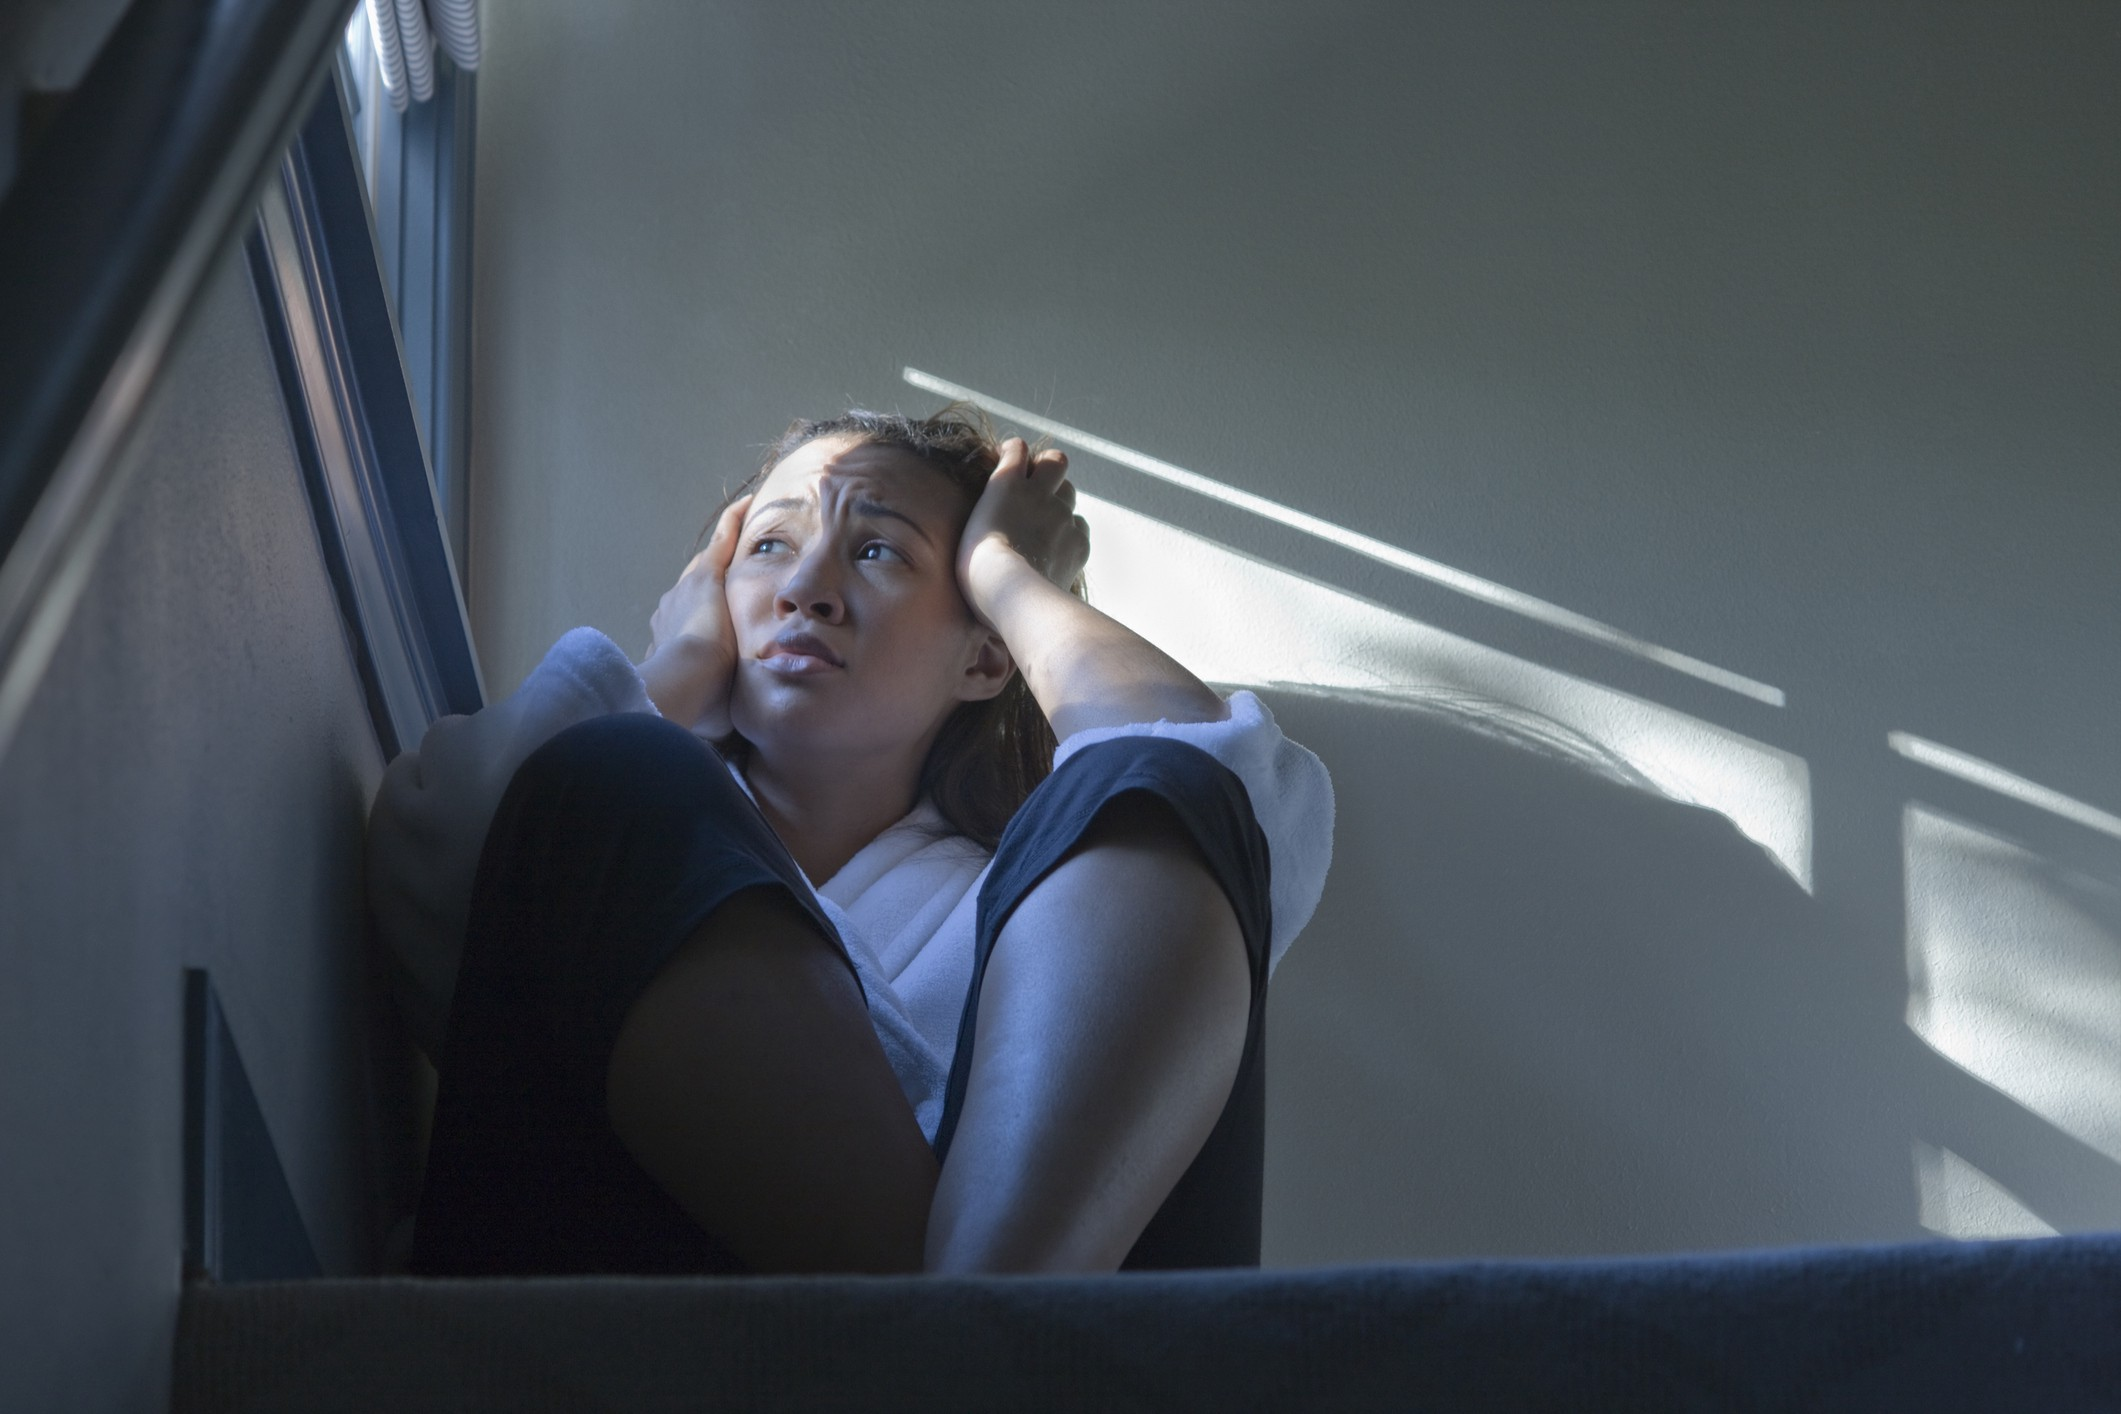 A photo of a despondent black woman sitting by the window in the stairwell.